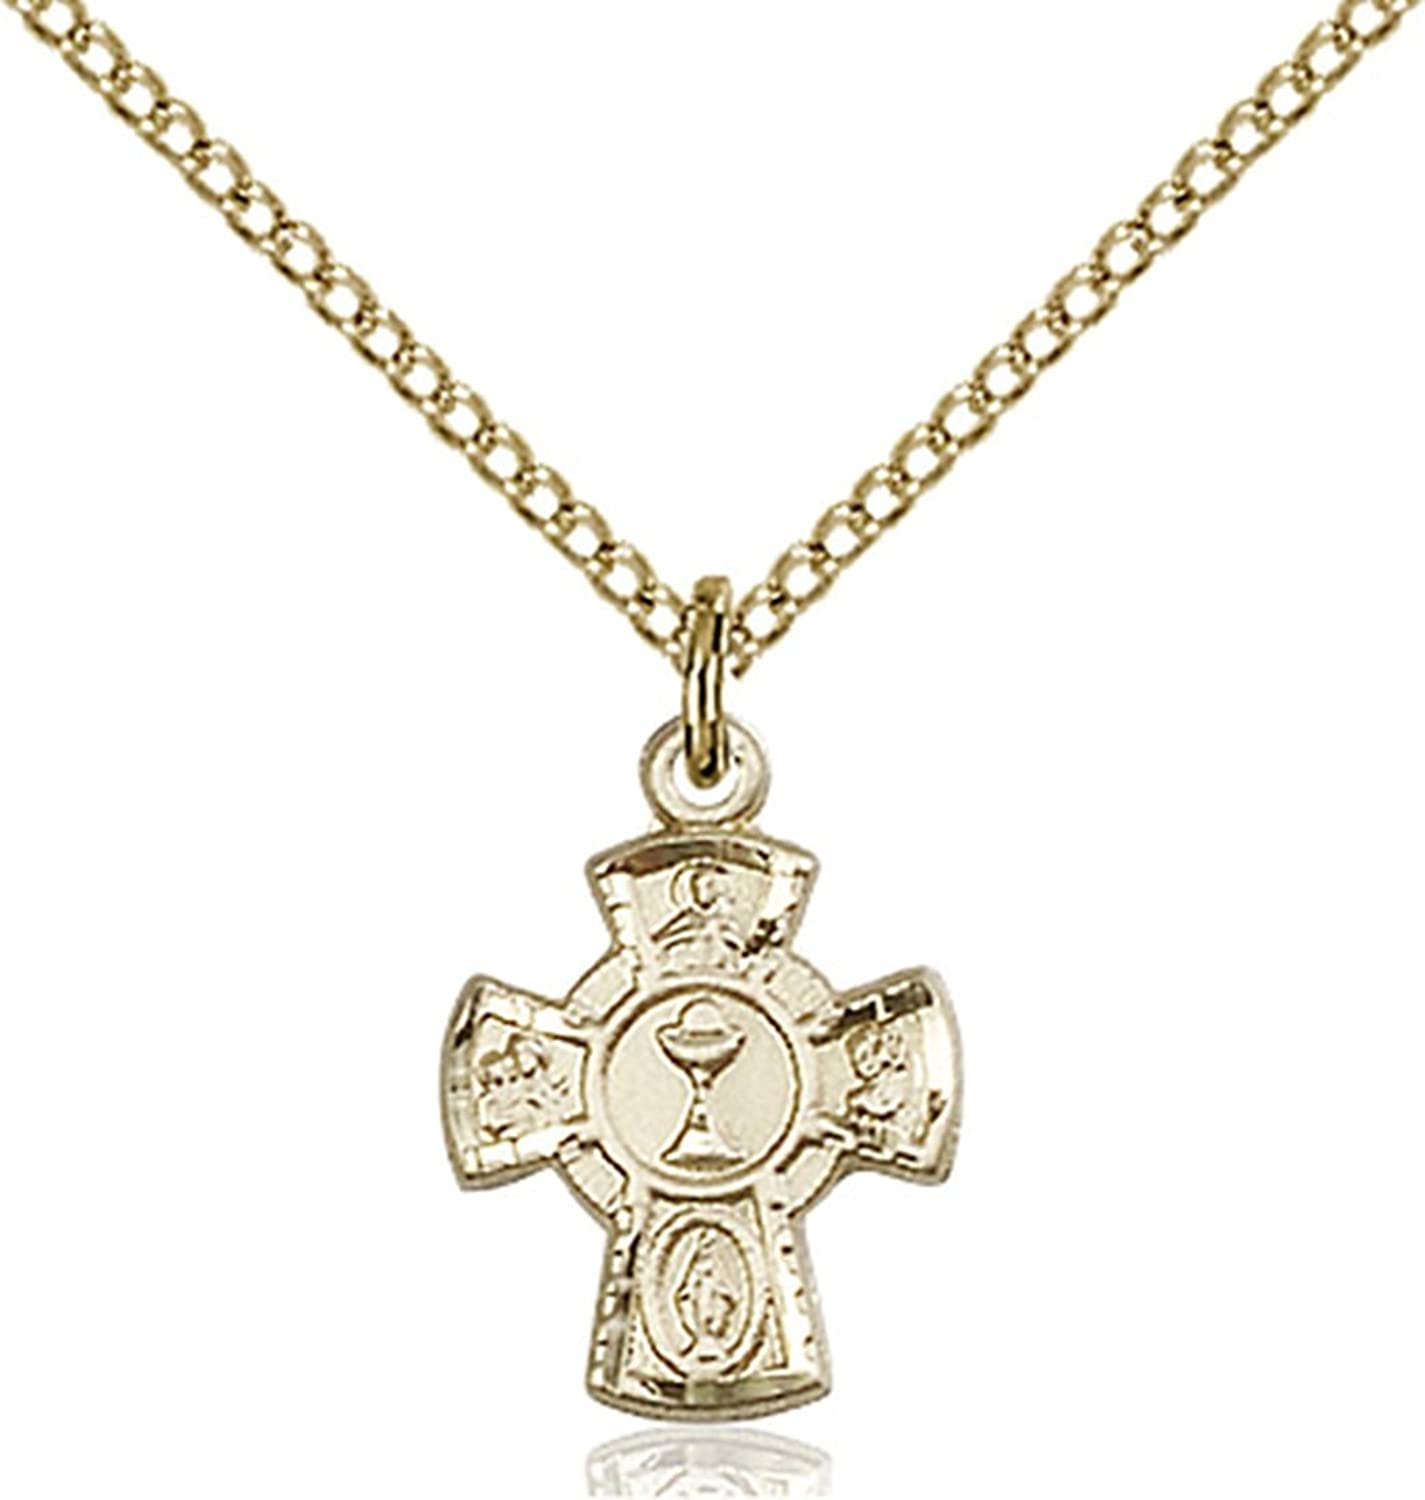 14K Gold Filled First Communion 5-Way Medal with Chalice Center, 1/2 Inch